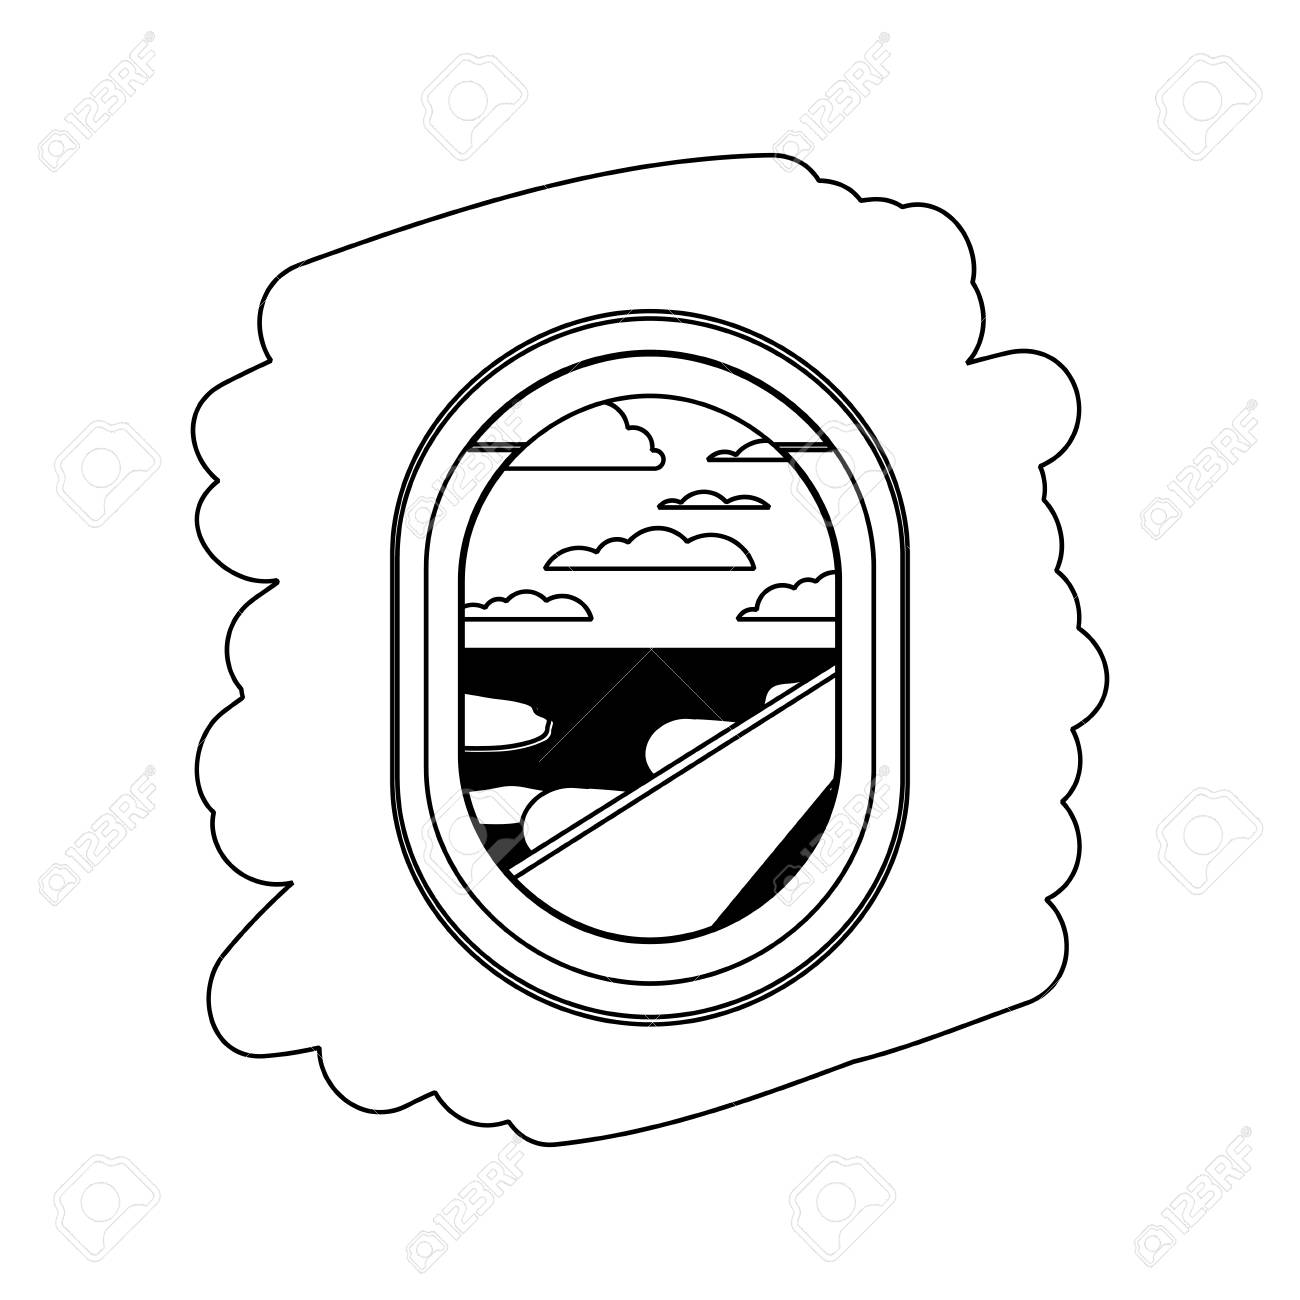 Airplane Window With Exterior View Vector Illustration Design